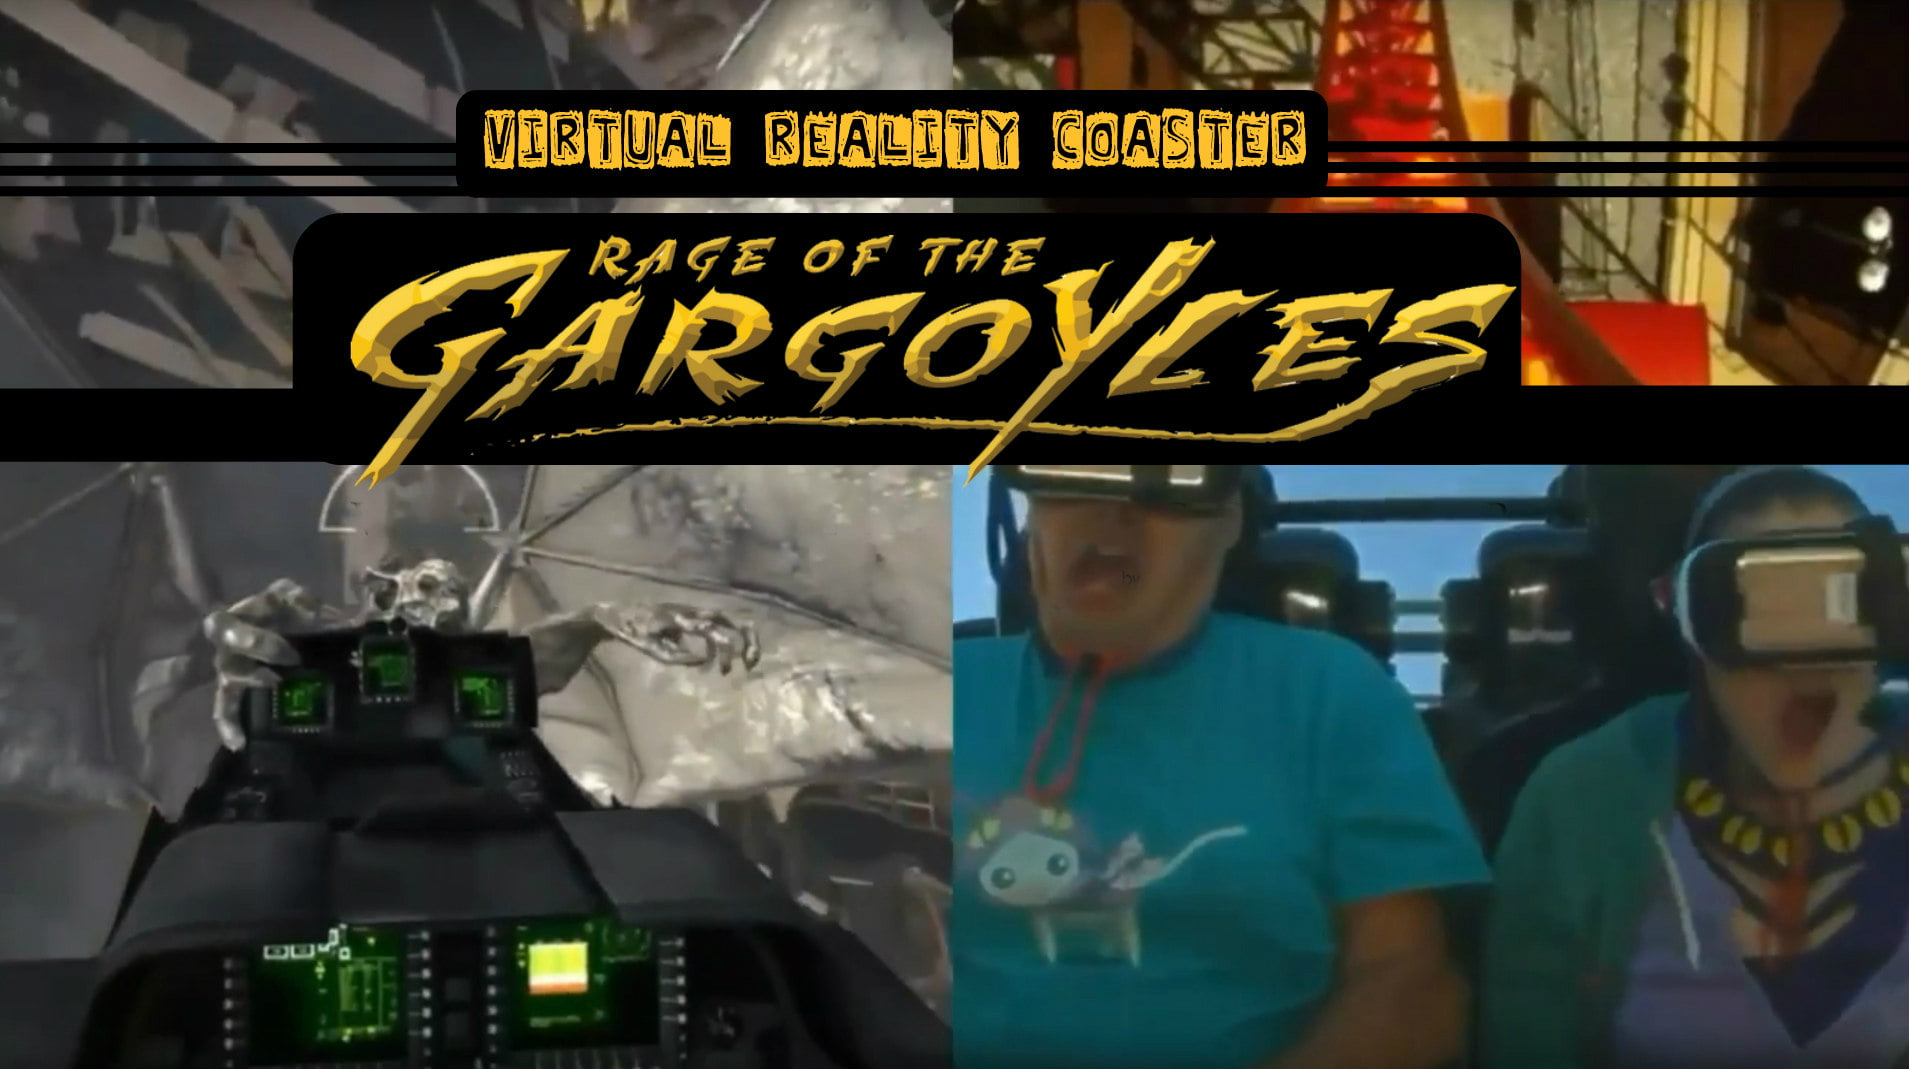 Six Flags Combines Virtual Reality with Real Life Roller Coaster in New Rage of the Gargoyles Ride